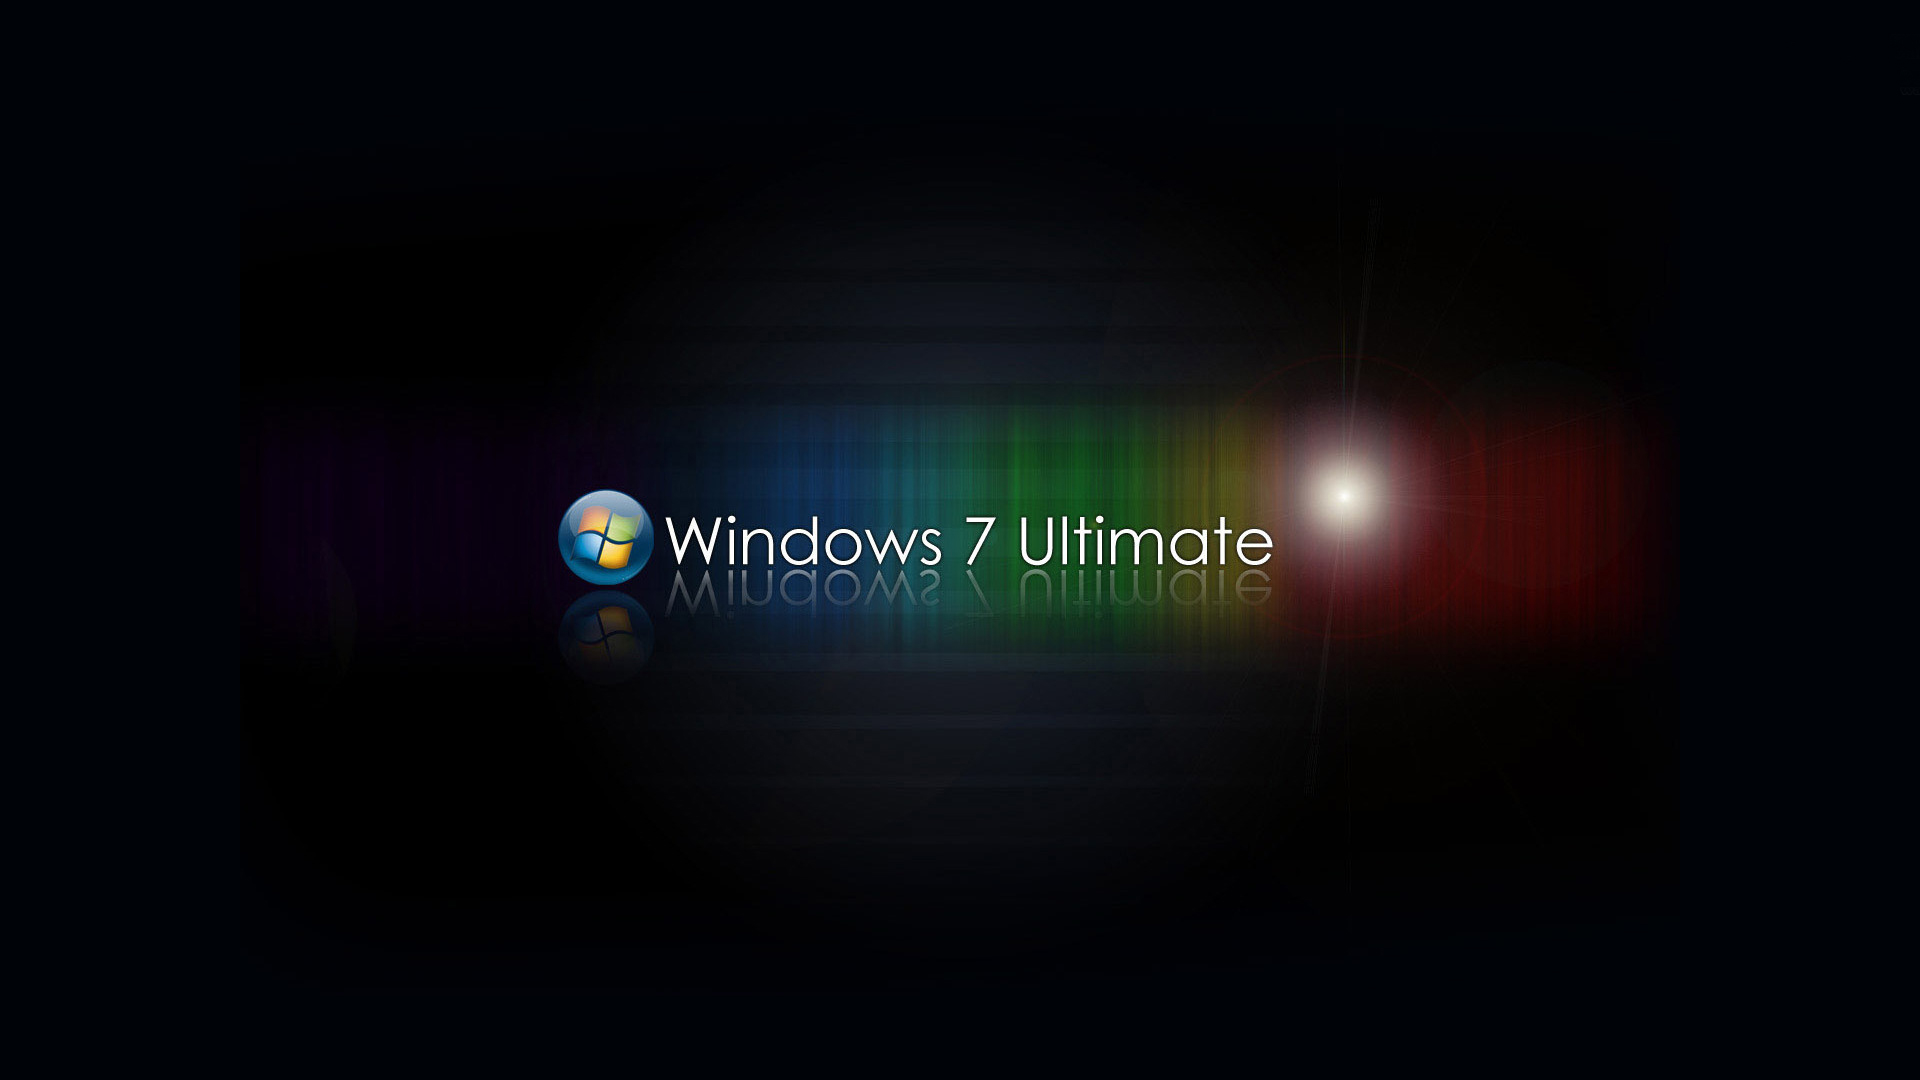 HD Colourful Wallpapers for Windows 7 Ultimate 1920x1080